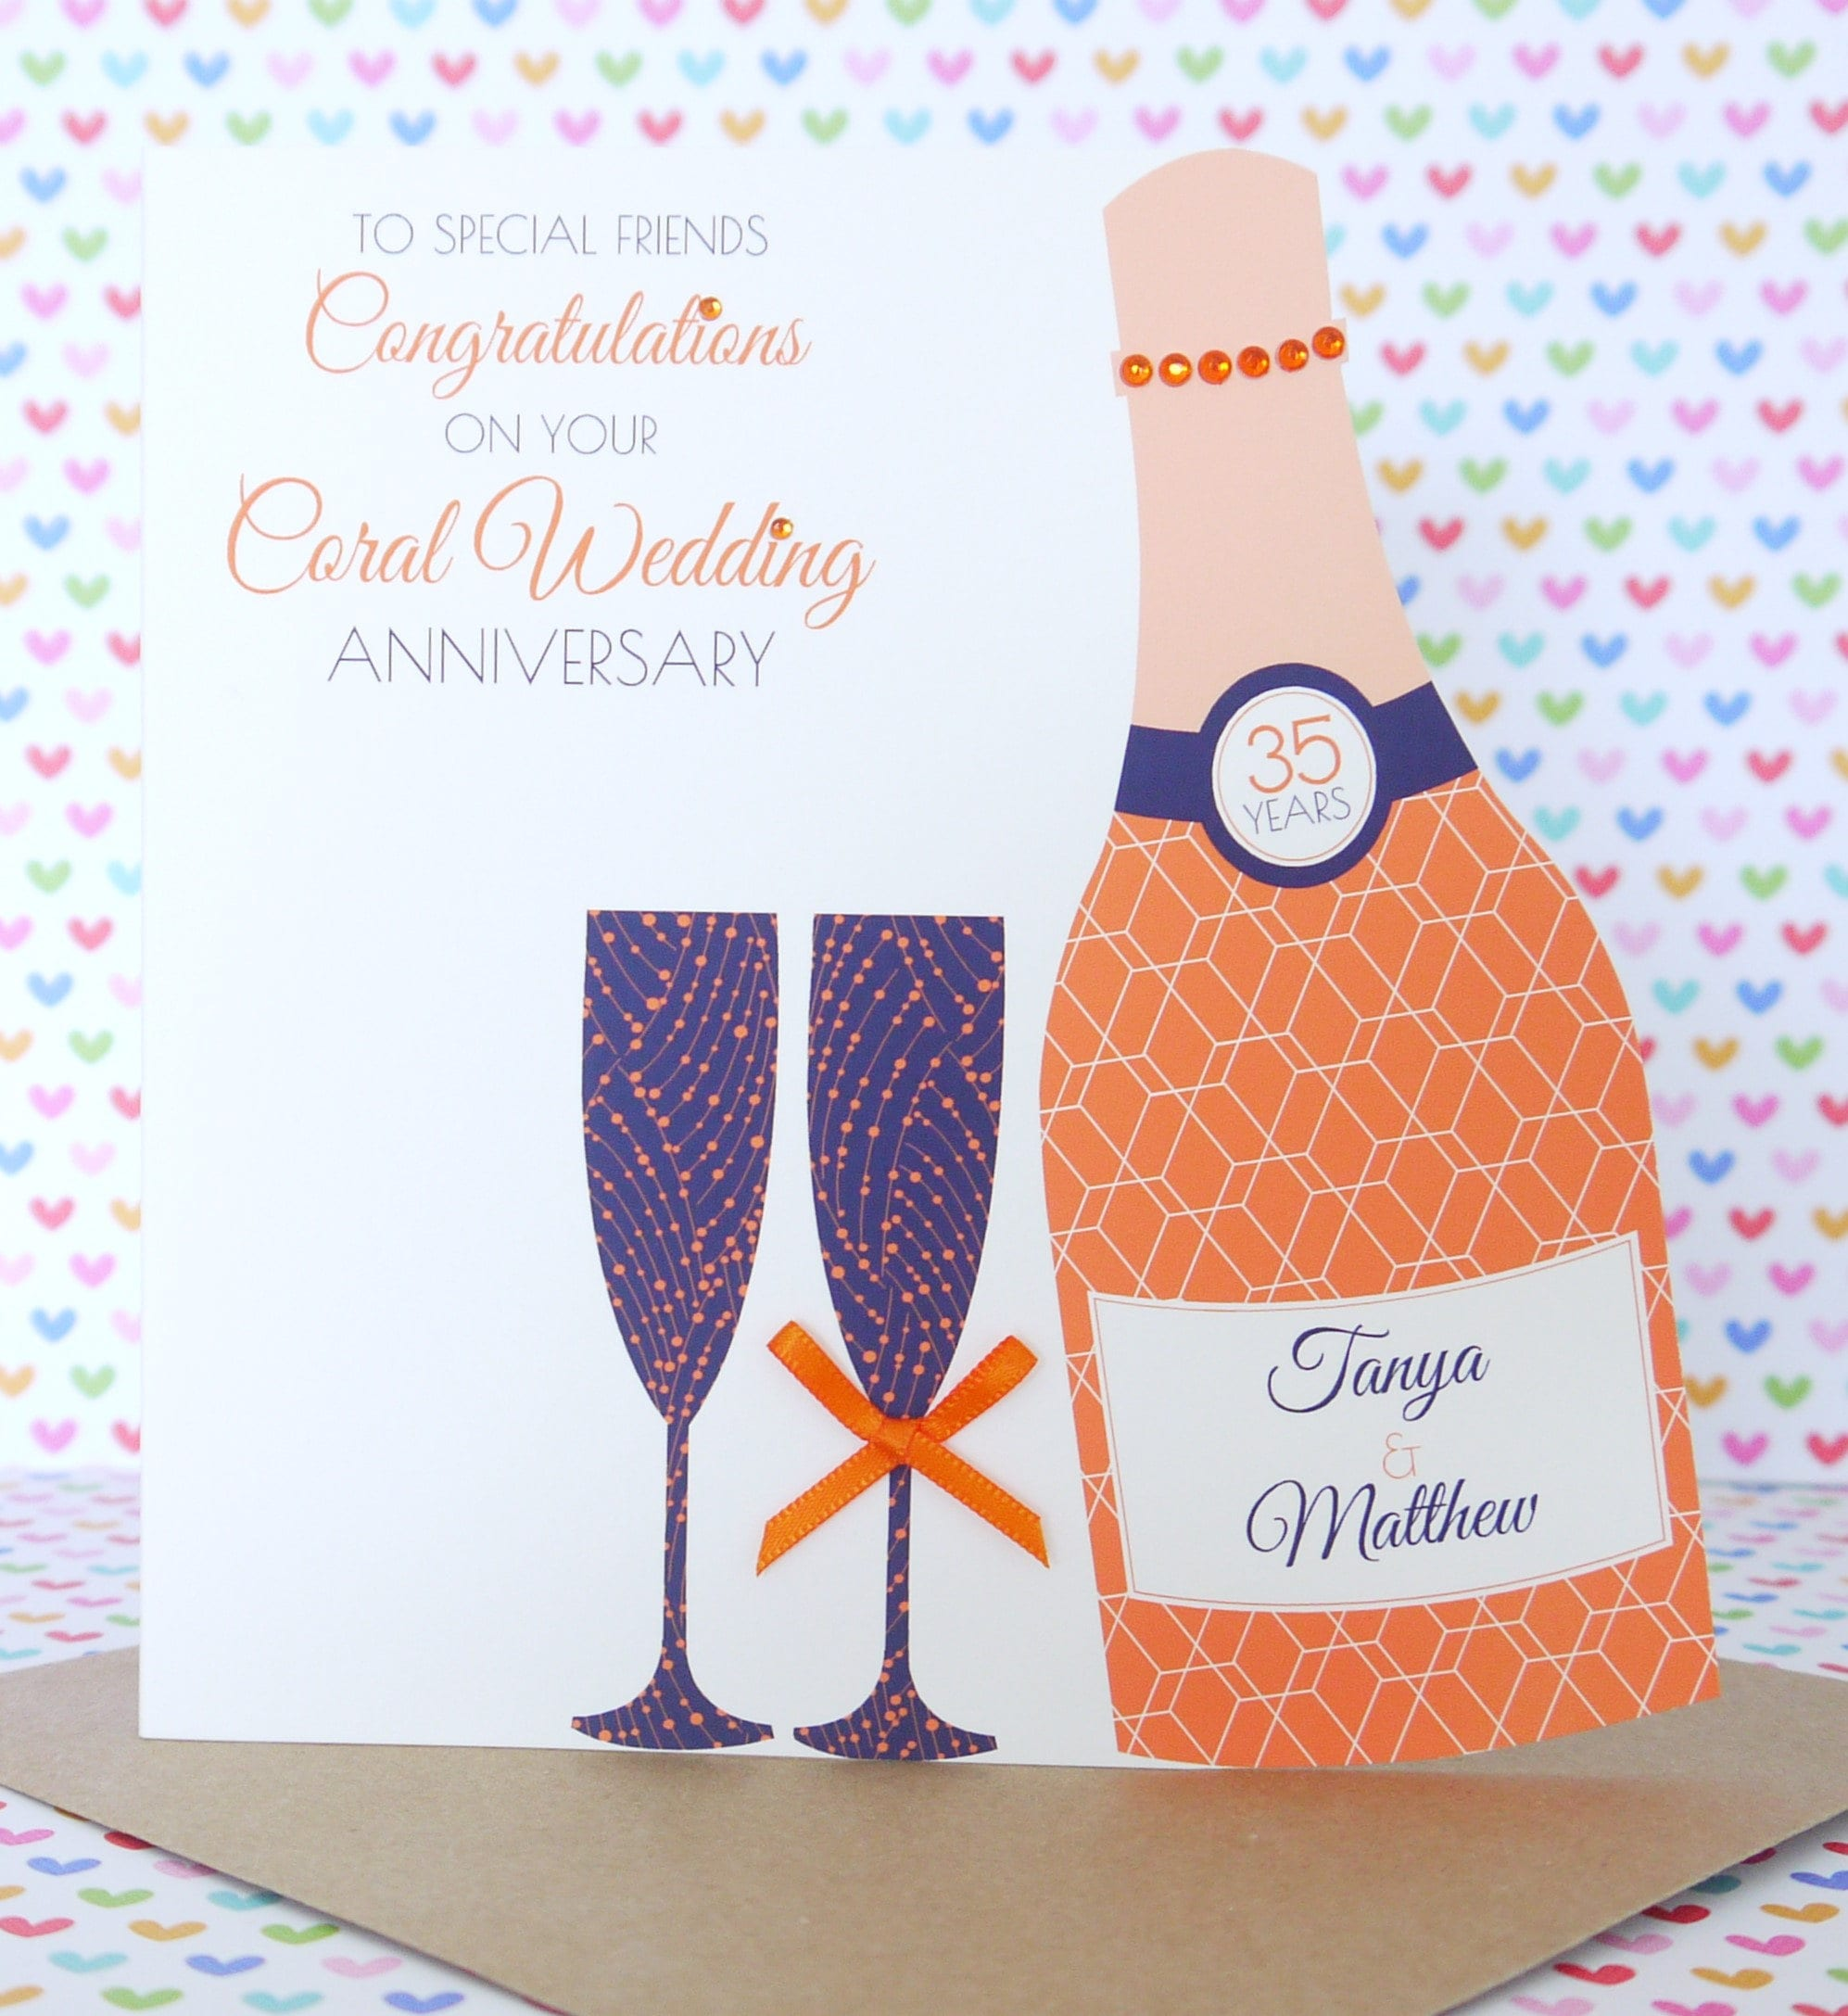 Gift Ideas For 35th Wedding Anniversary: Personalised Handmade Coral/35th Wedding Anniversary Card